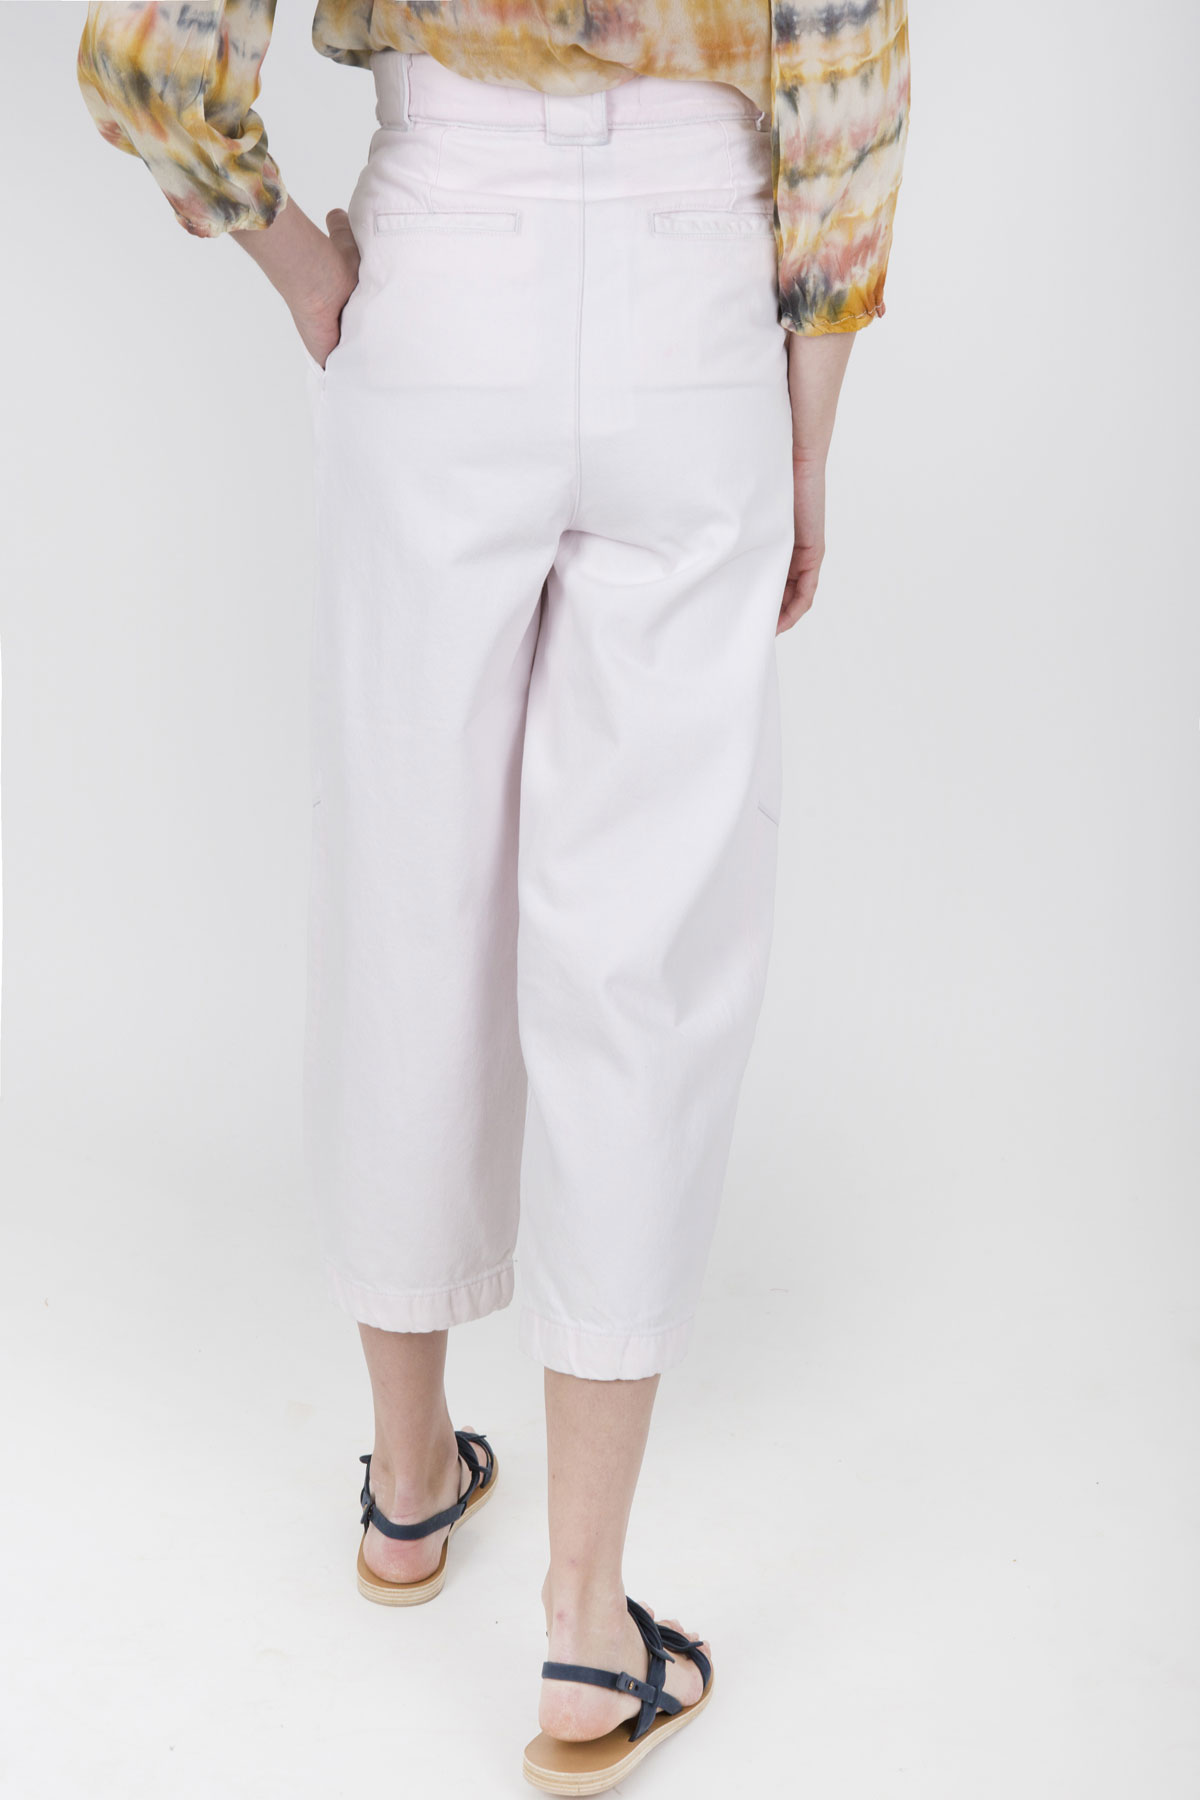 despres-iro-jeans-highwaisted-trousers-pink-matchboxathens